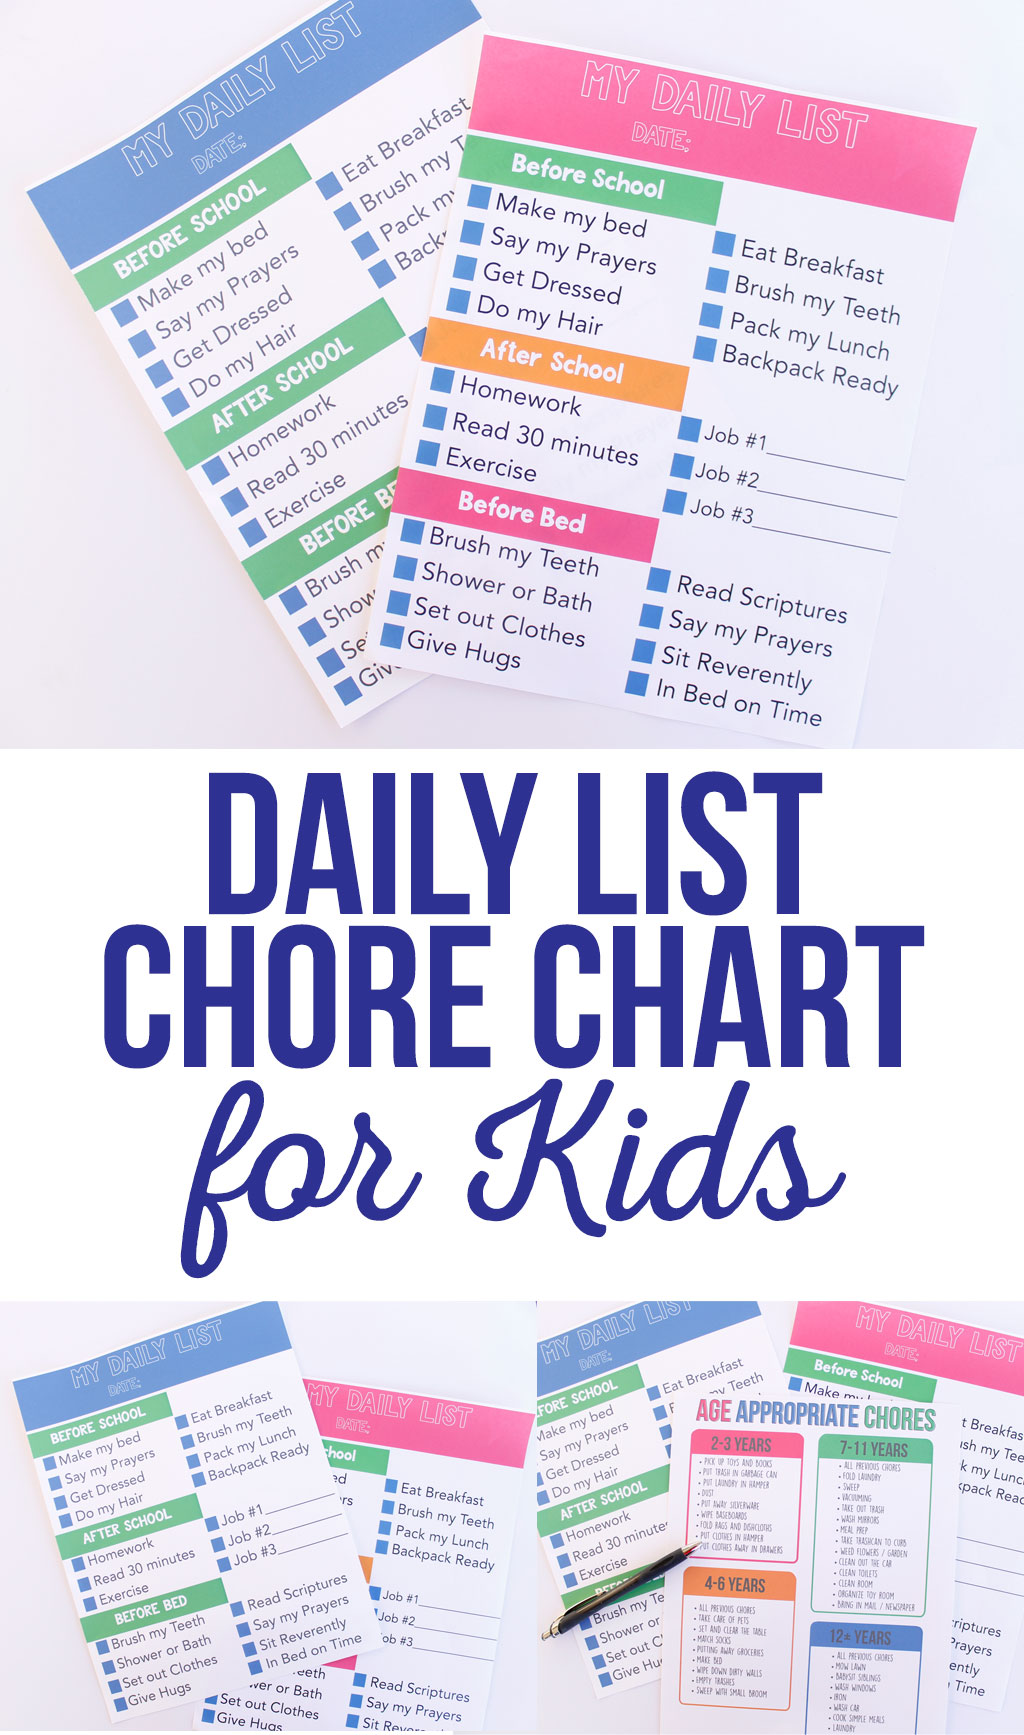 The perfect chore chart for older kids.  Daily List Chore Chart for Kids keeps them on task and gives them motivation get everything done.